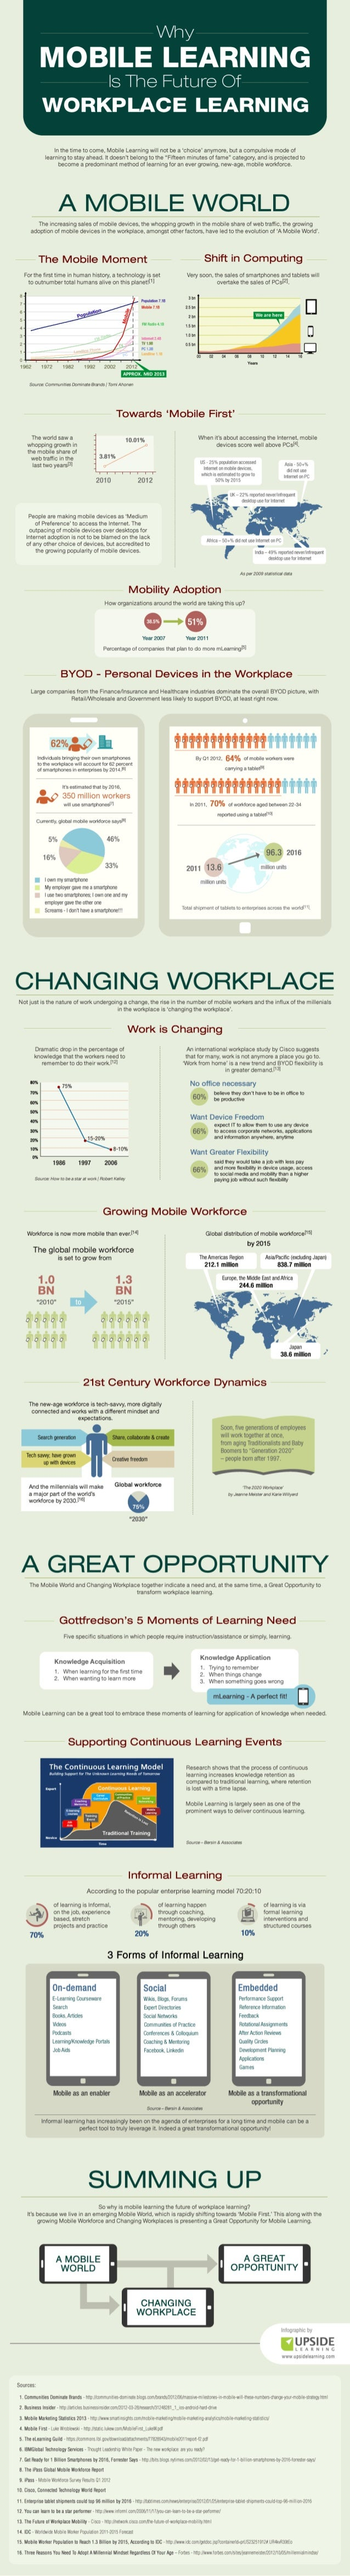 Why  MOBILE LEARNING  is The Future Of WORKPLACE LEARNING     In the time to come,  Mobile Learning will not be a 'choice'...